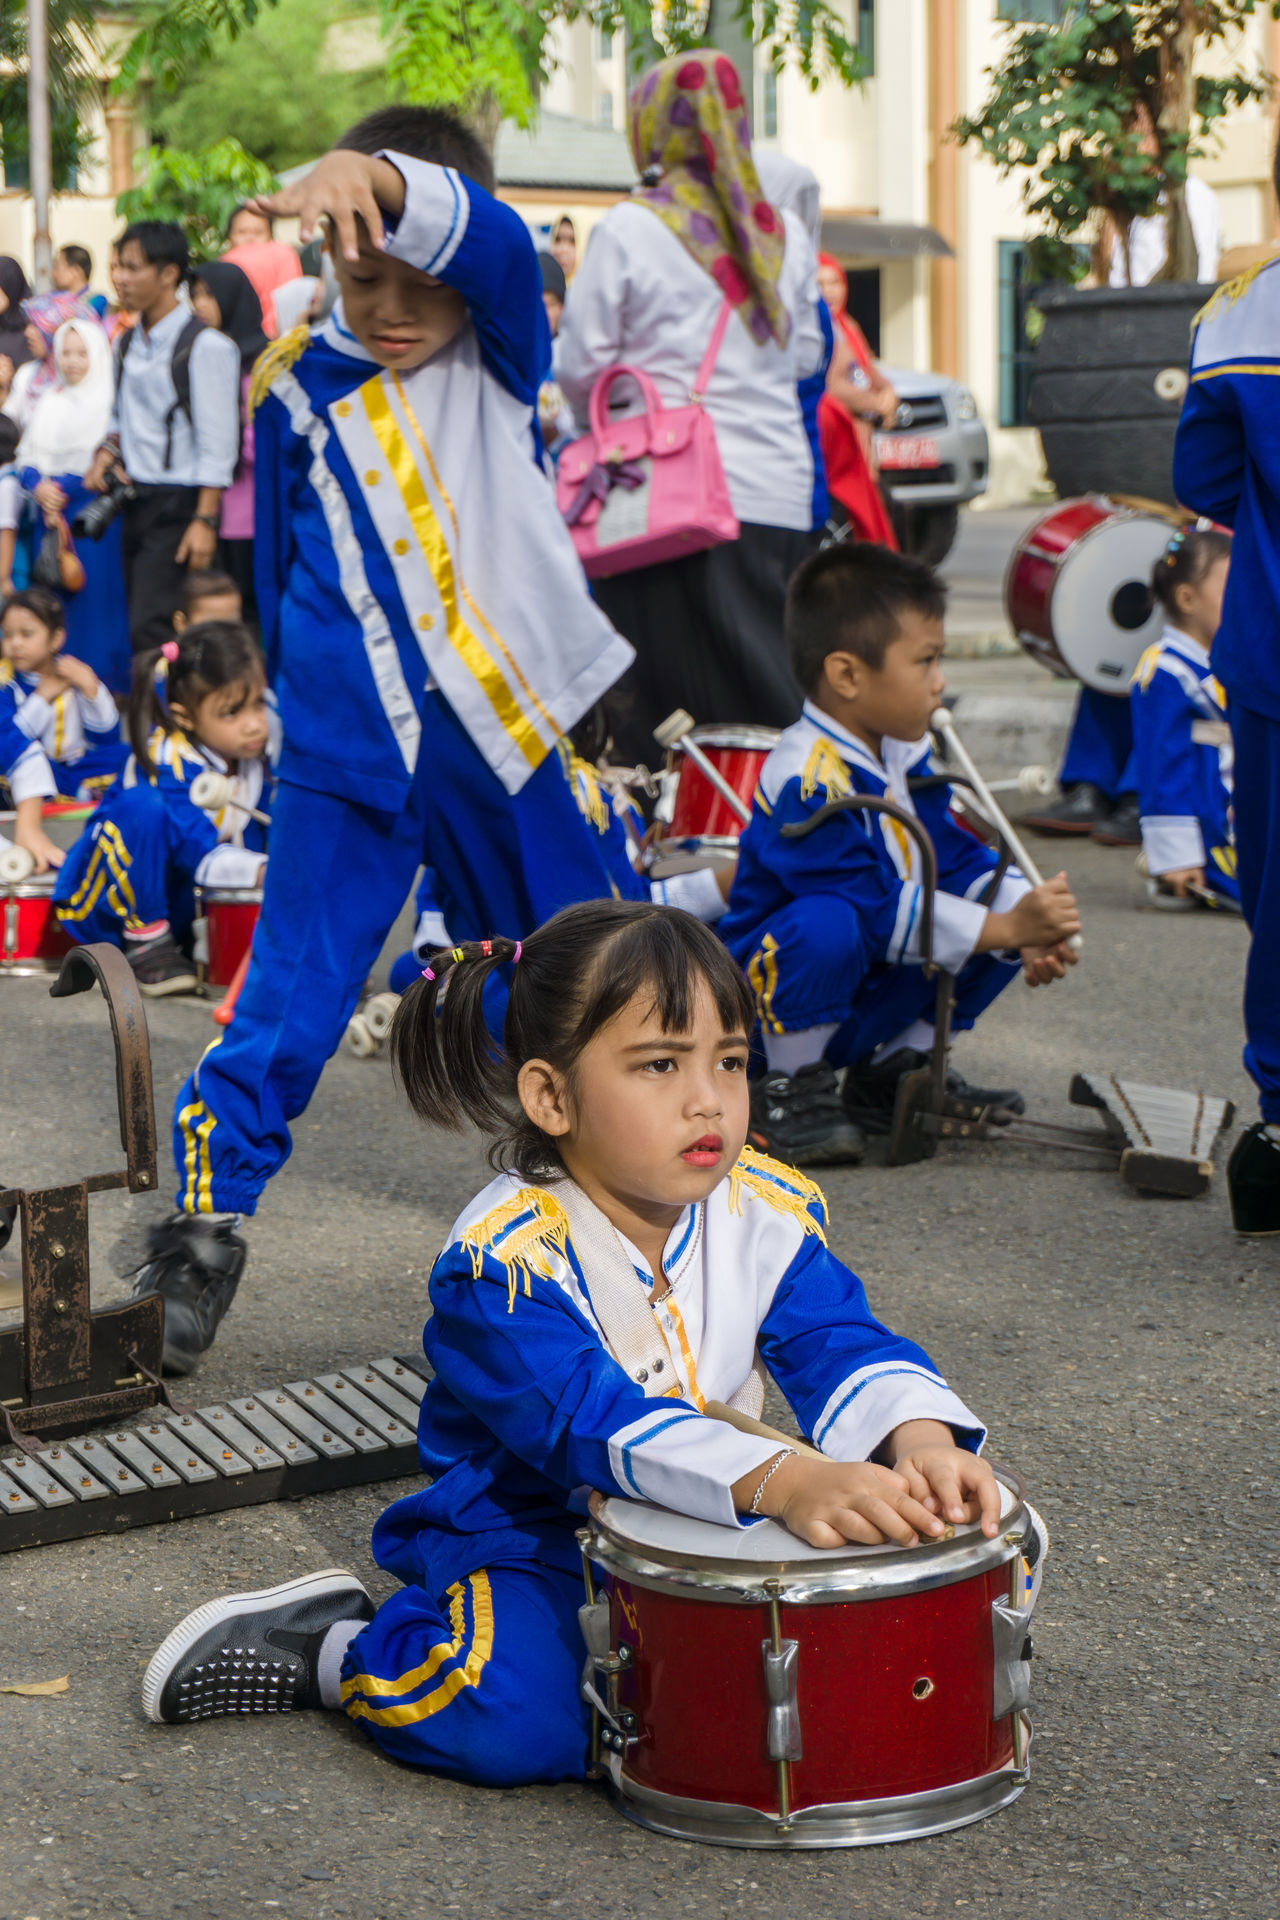 marching band Adult Blue Boys Carnival Crowds And Details Charity And Relief Work Child Childhood Crowd Cultures Day EyeEmNewHere Females Girls Marching Band Outdoors People Real People Sitting Standing Street Street Photography Uniform Waiting Women Young Adult